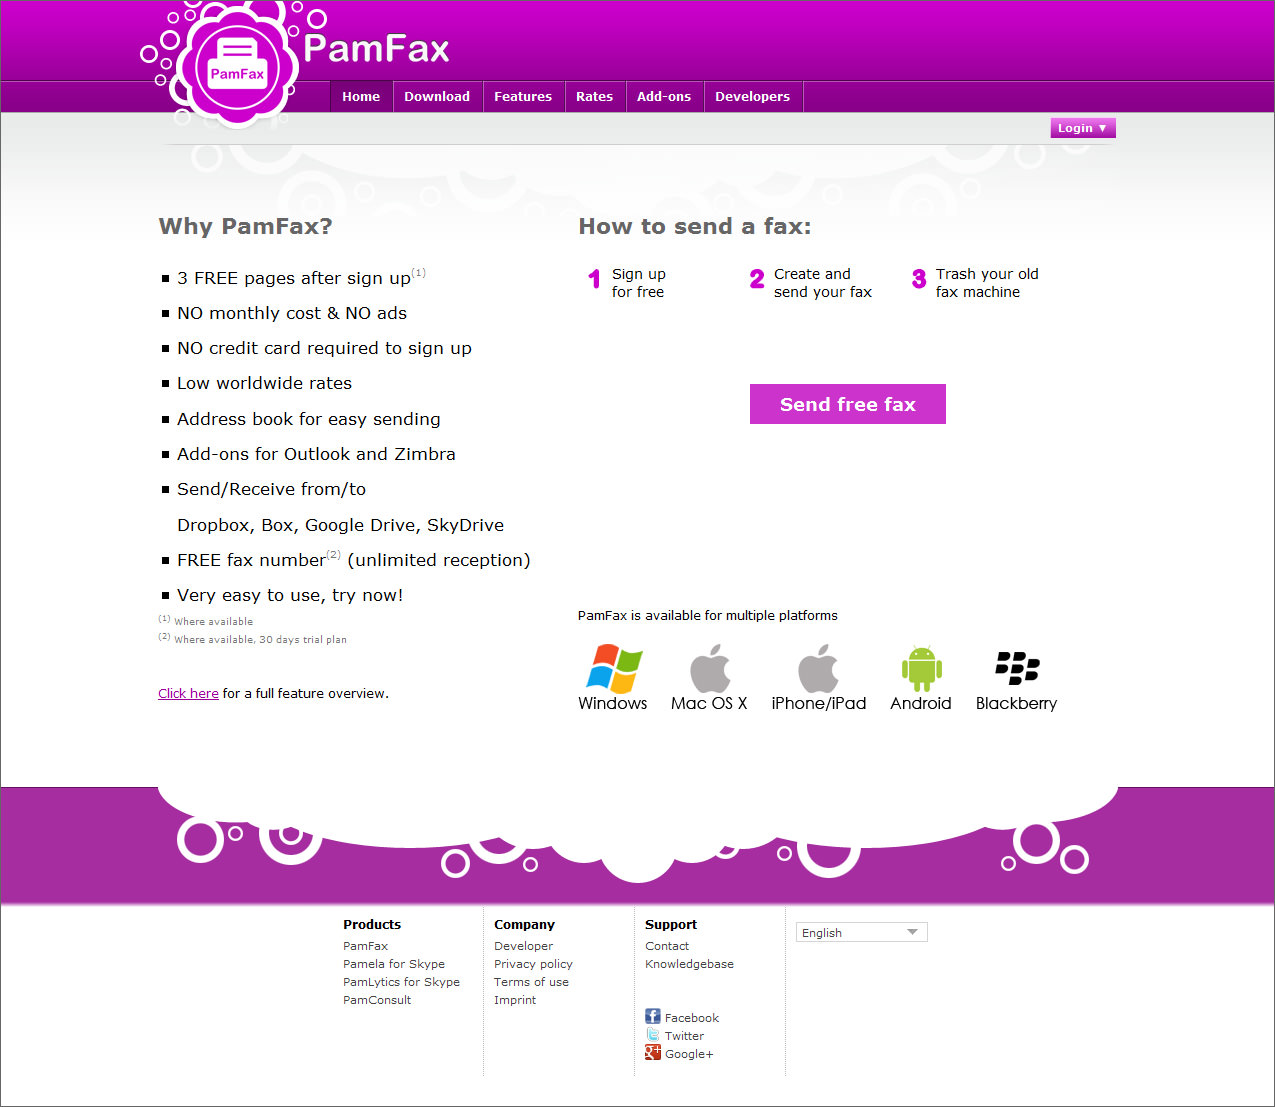 pam fax free internet fax 5 Best Online Electronic Fax To Securely Send & Receive Fax Over The Internet